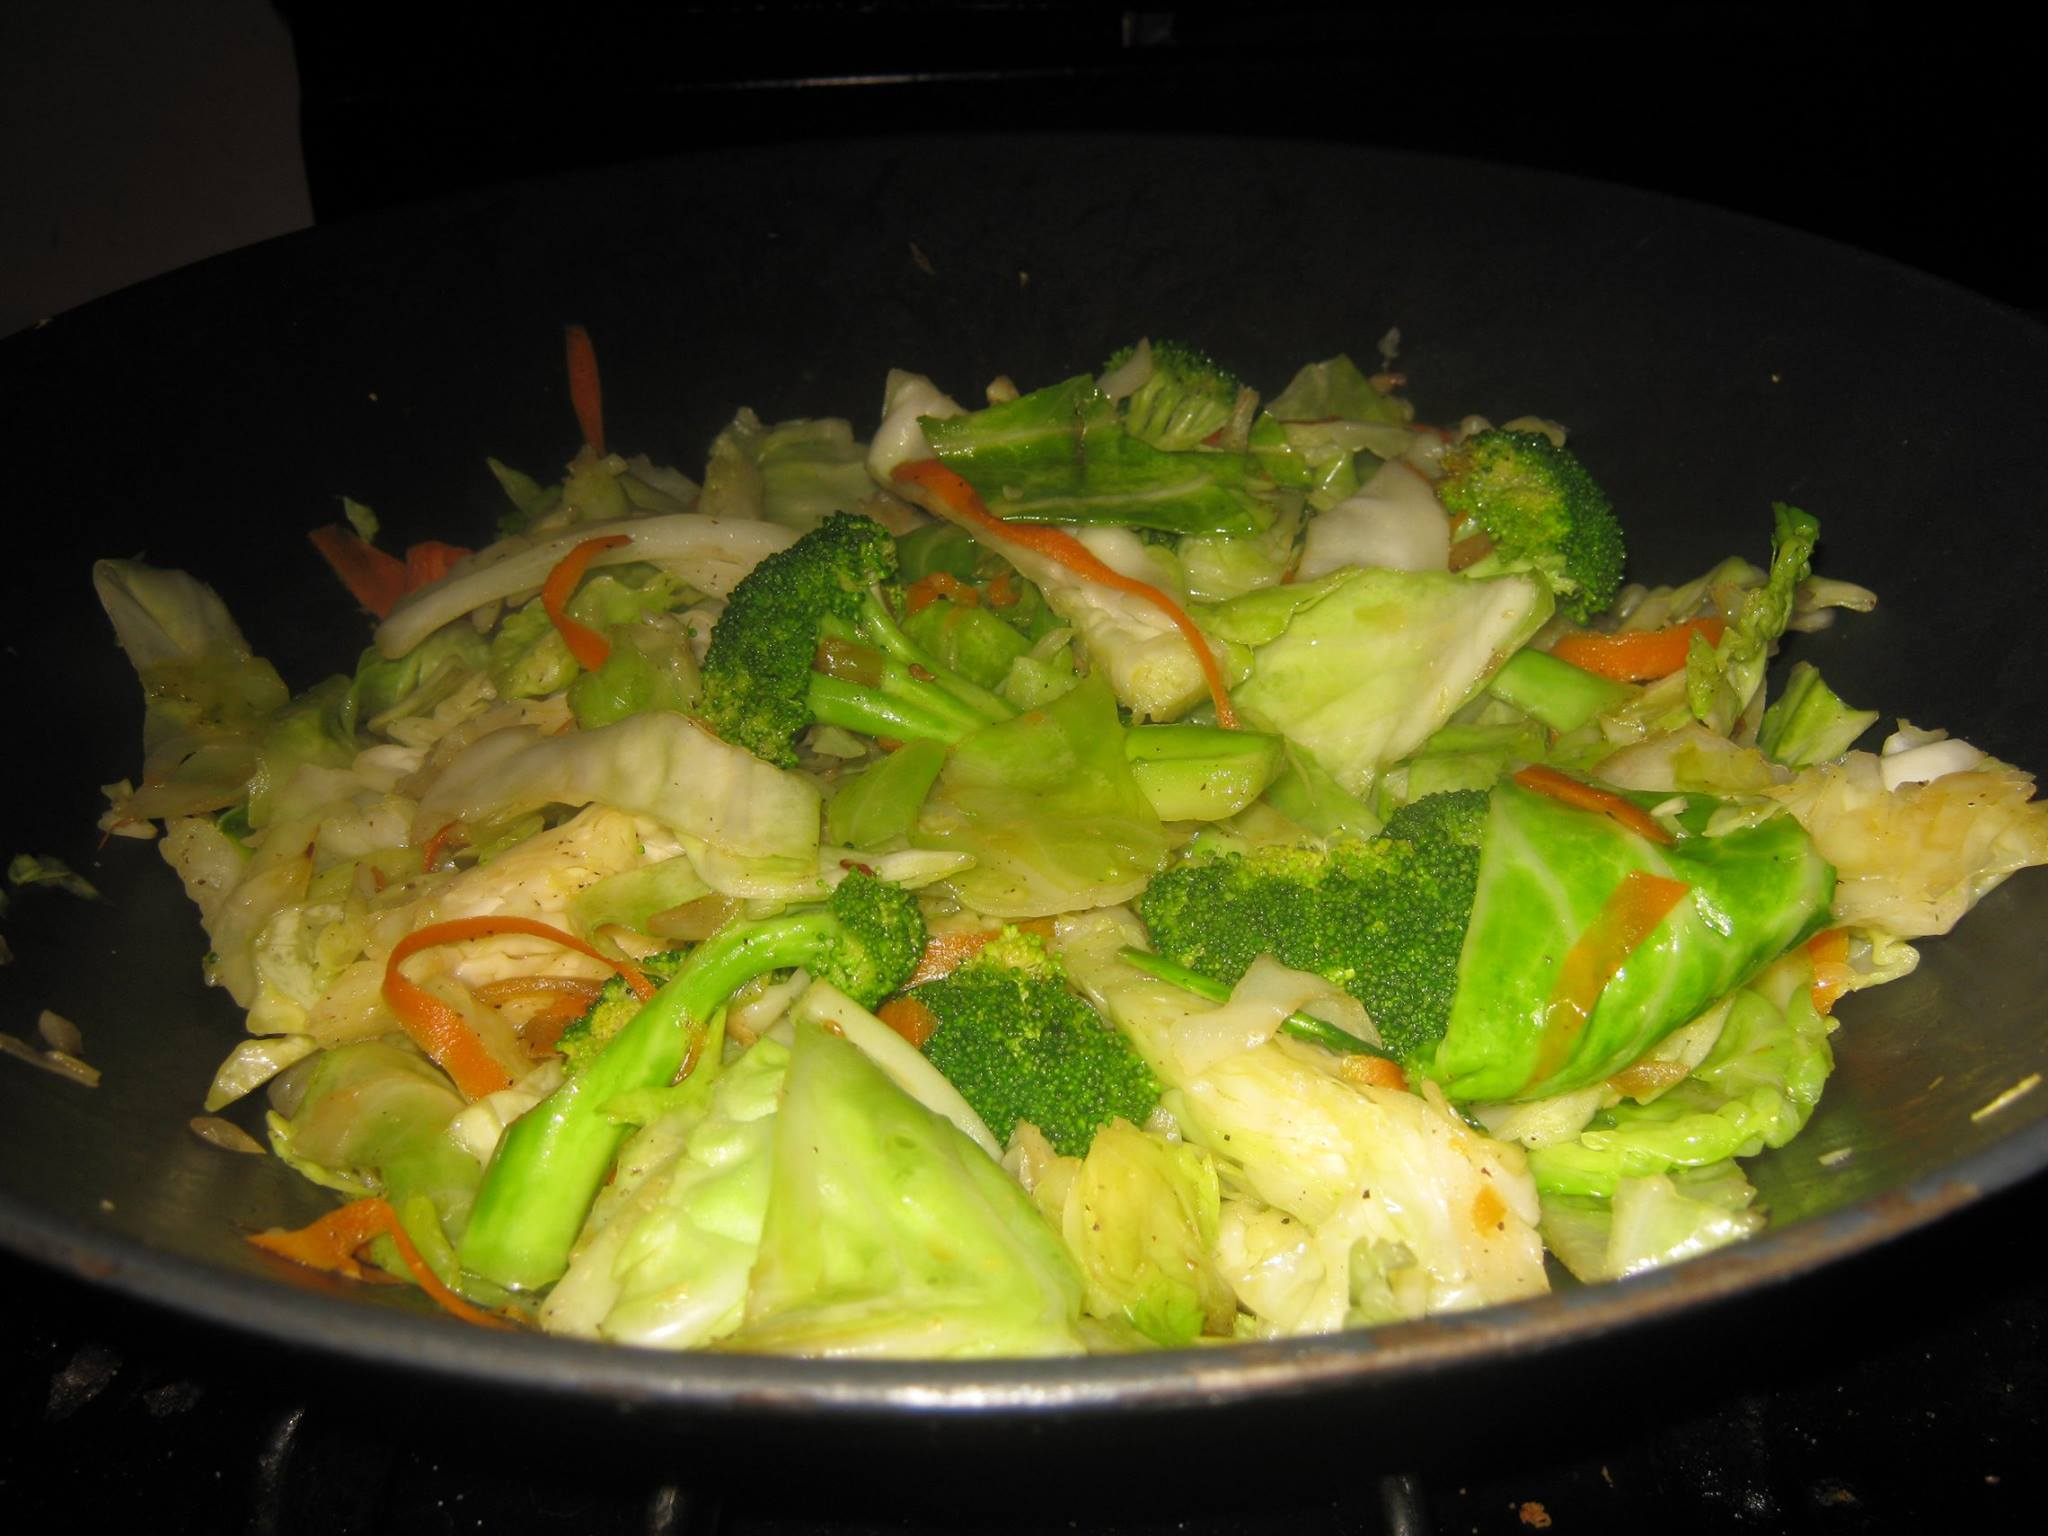 Cooked green cabbage, carrots, broccoli and onions recipe in a wok